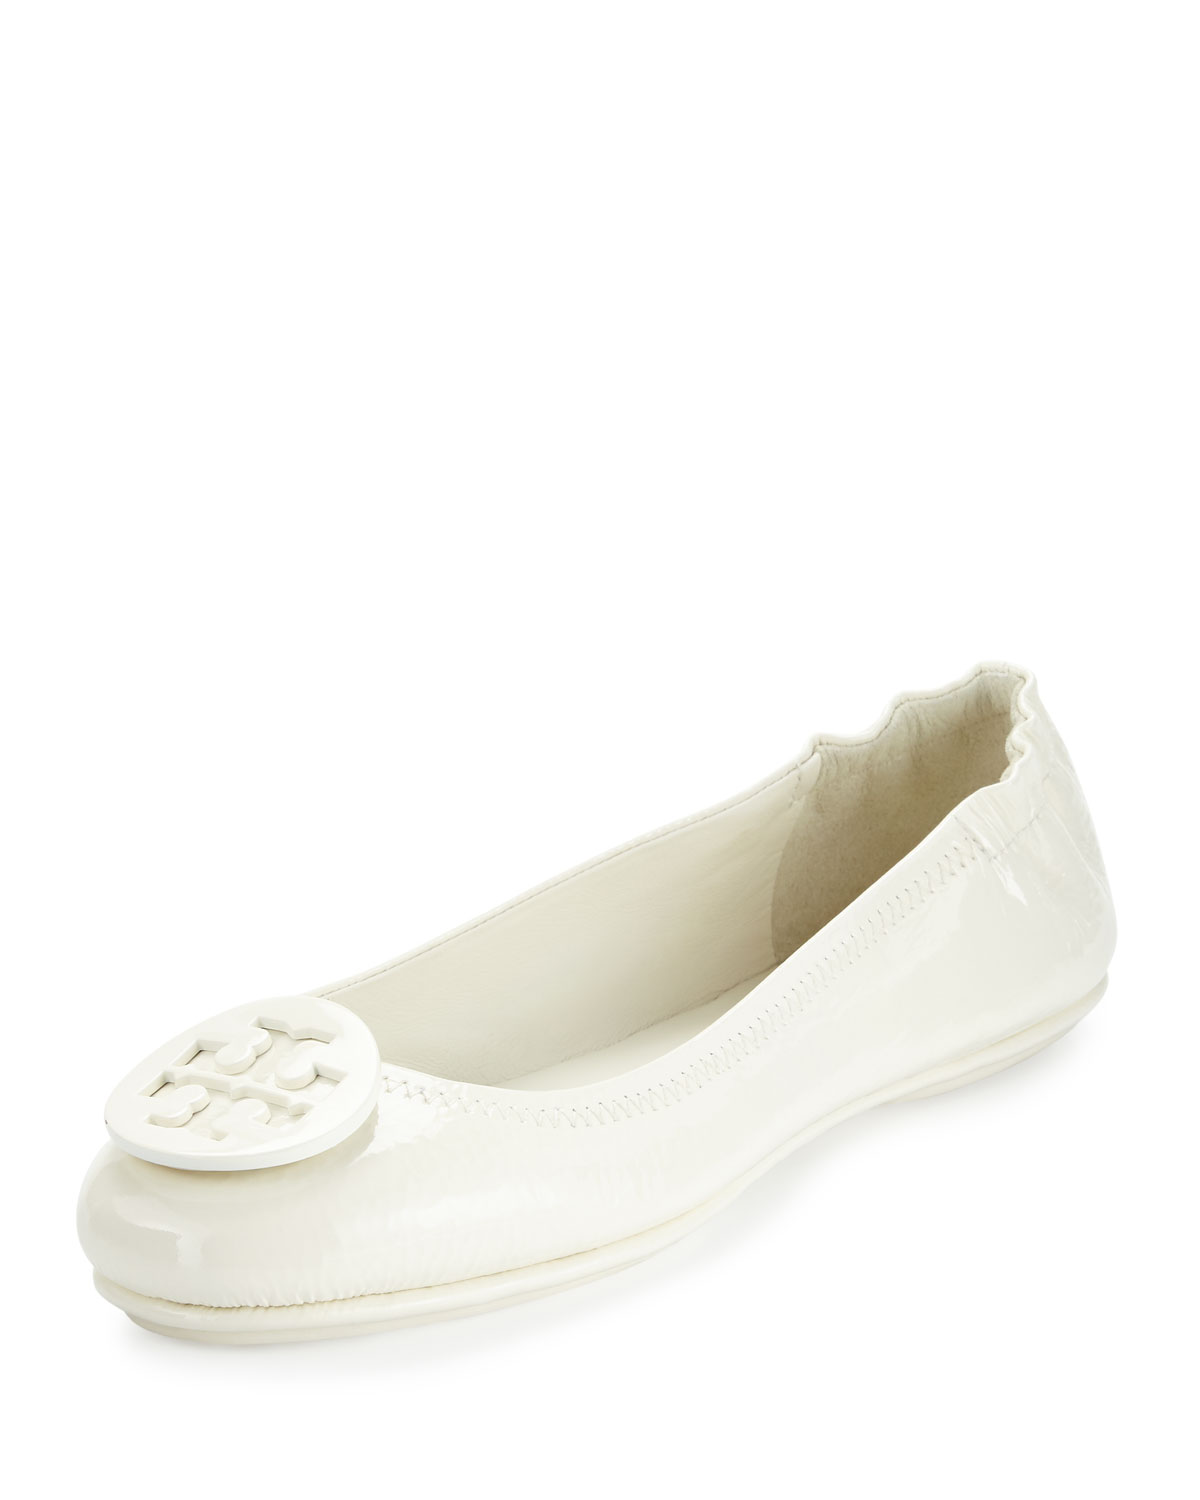 016523dfcbfa61 Tory Burch Minnie Travel Logo Ballet Flat